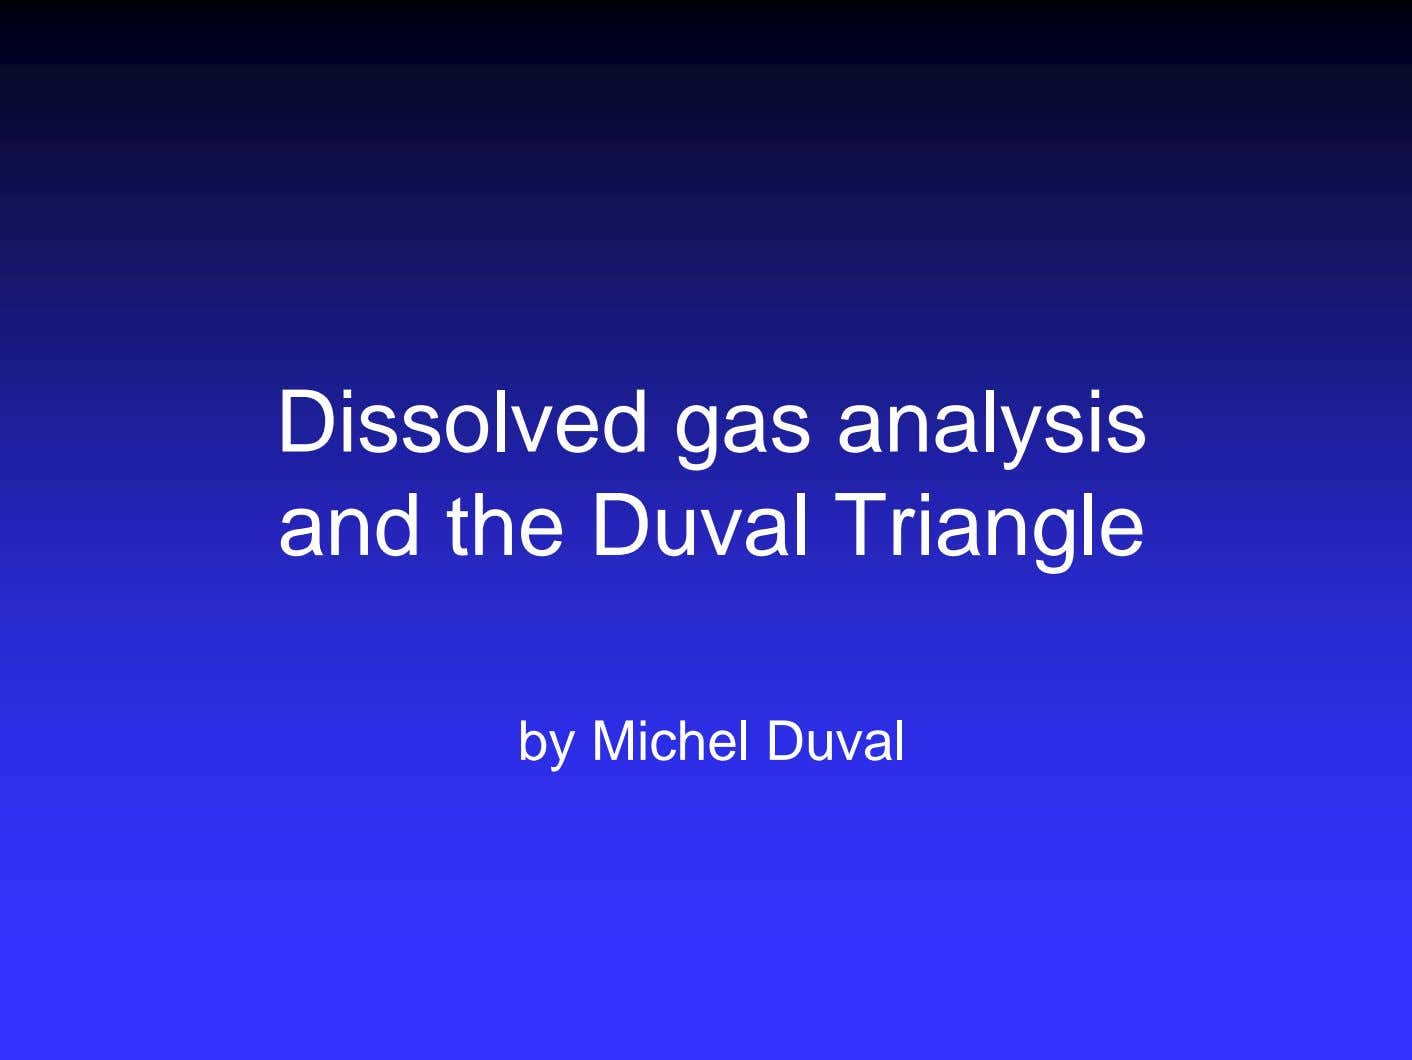 Dissolved gas analysis and the Duval Triangle by Michel Duval